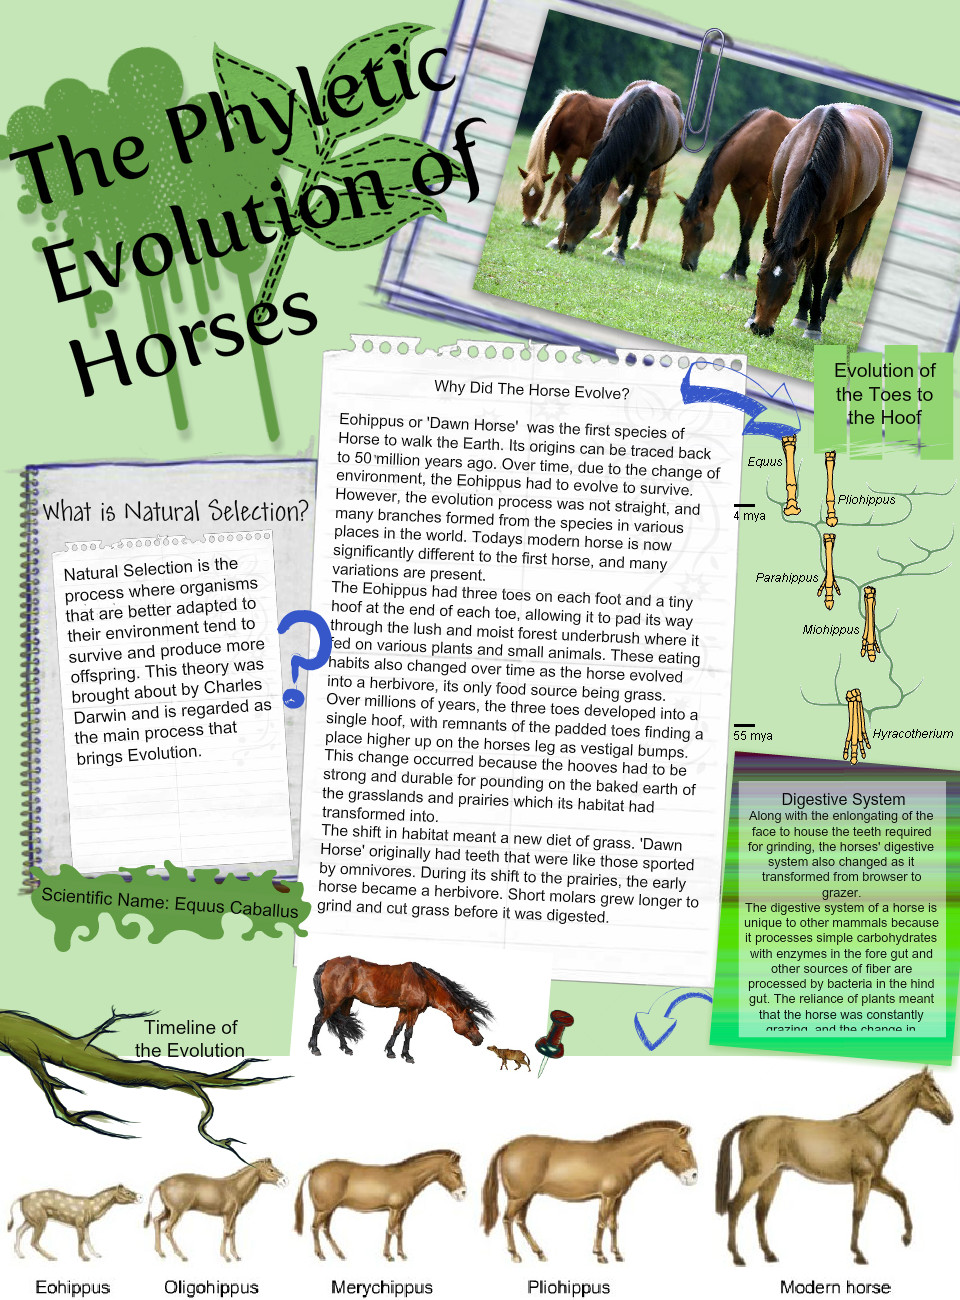 The Phyletic Evolution of Horses